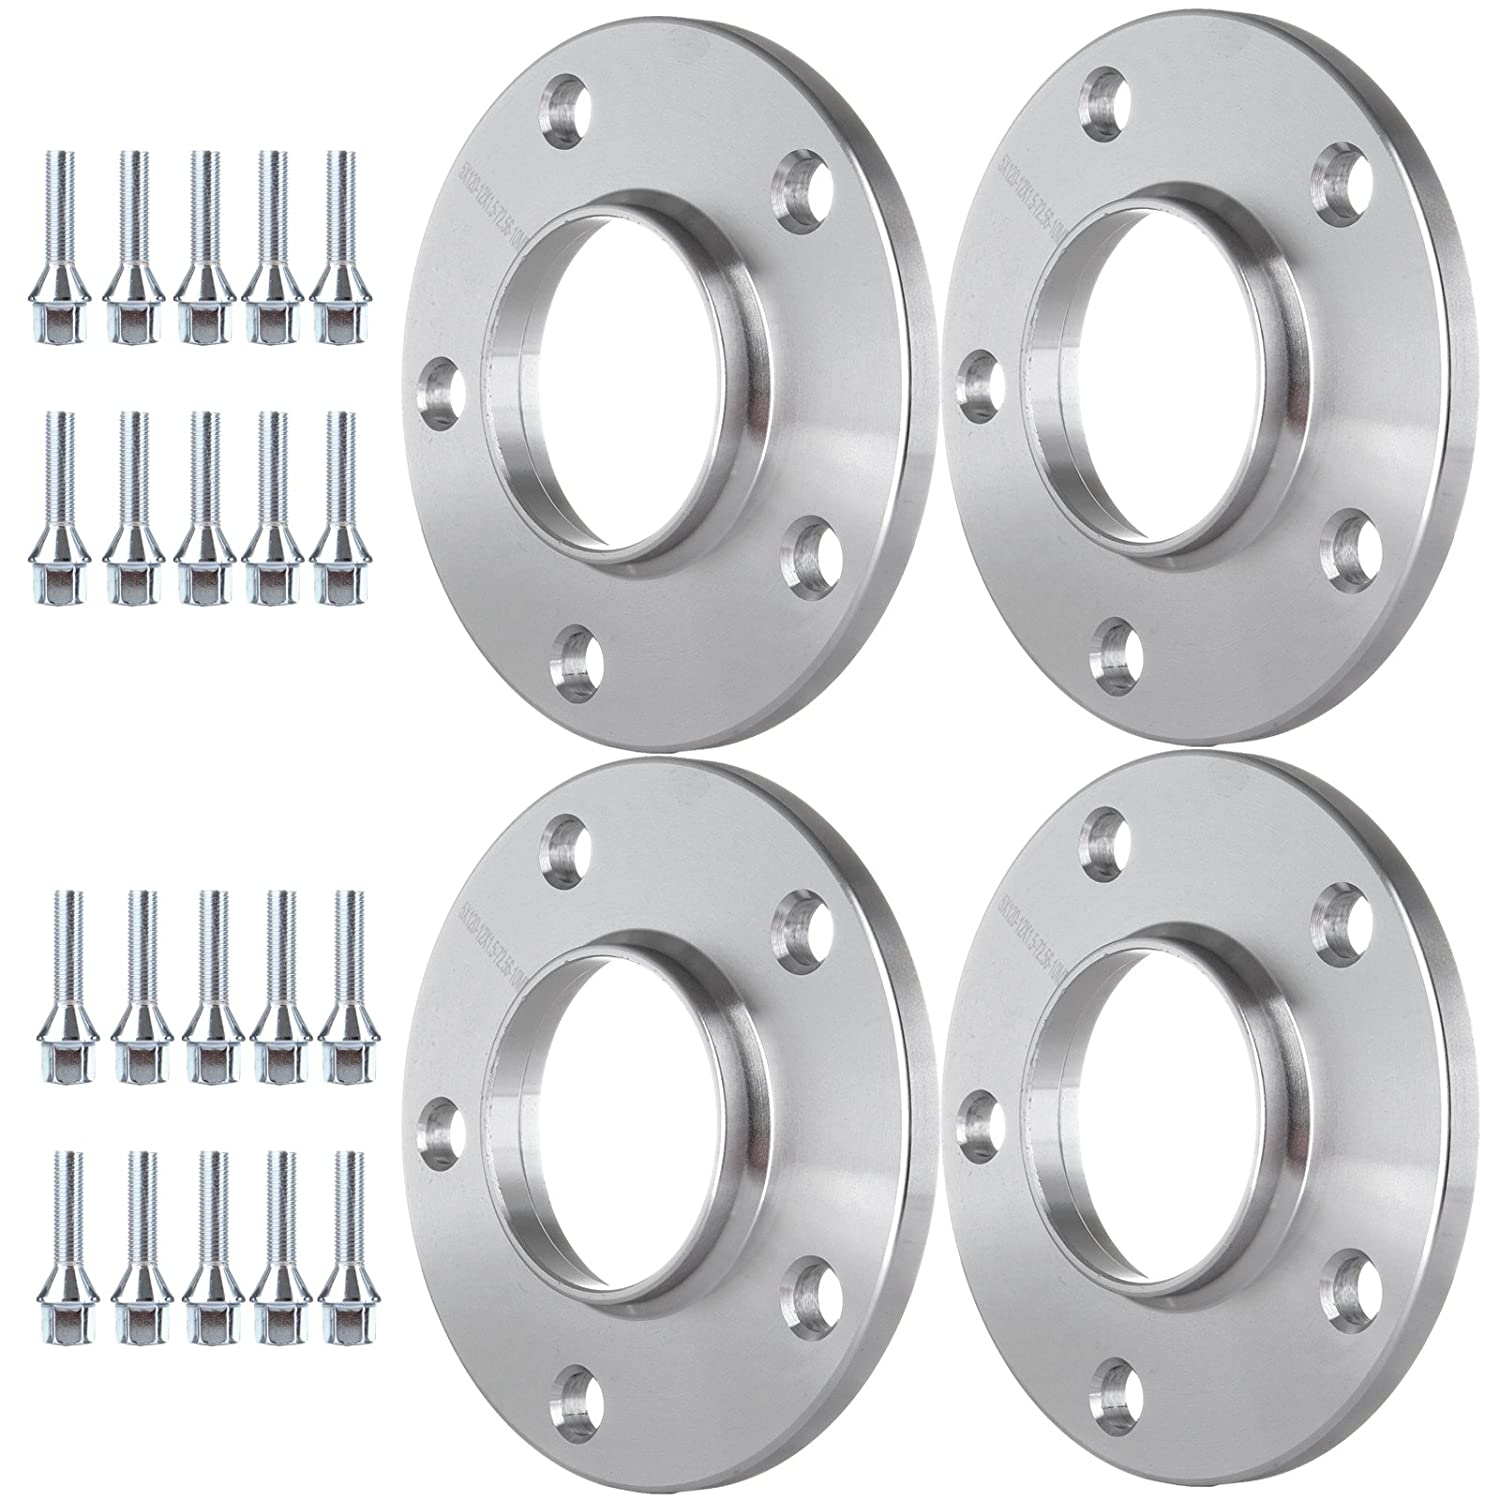 5x120 72.56 Fits BMW with Lug Bolts 12x1.5,40mm Shank ECCPP 5x120 Hubcentric Wheel Spacers 4X 10mm 1//2